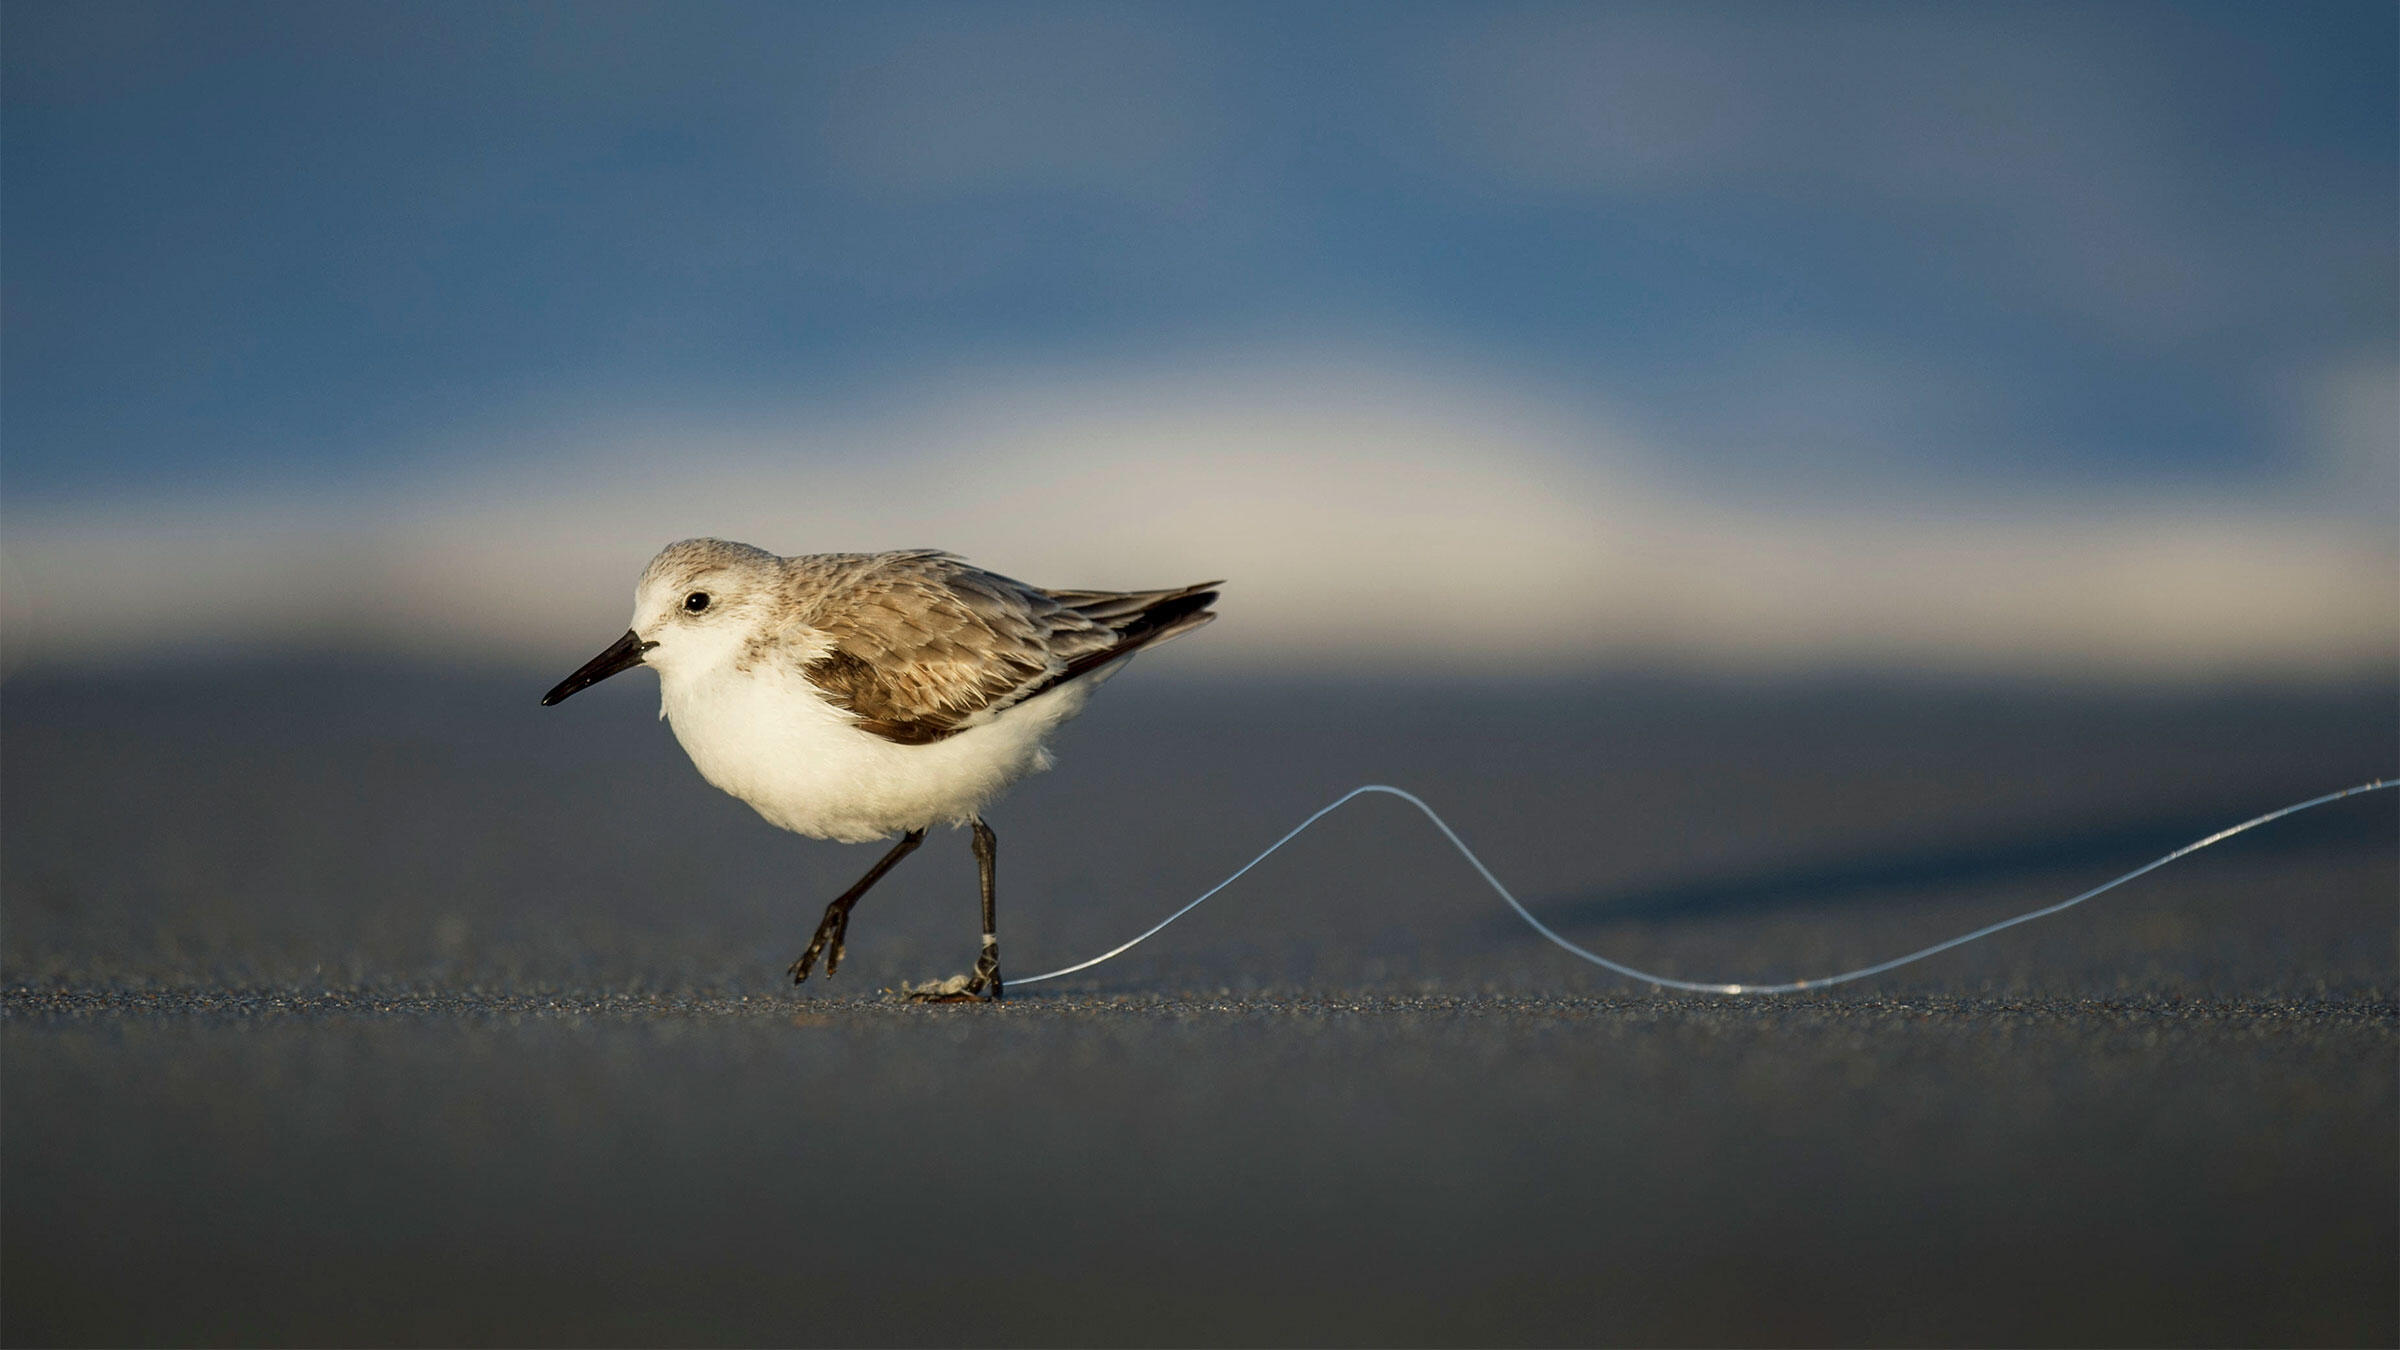 Sanderling tangled in fishing line. Birds that get snared too tightly or for too long often end up losing a limb from lack of blood flow. Raymond Hennessy/Alamy